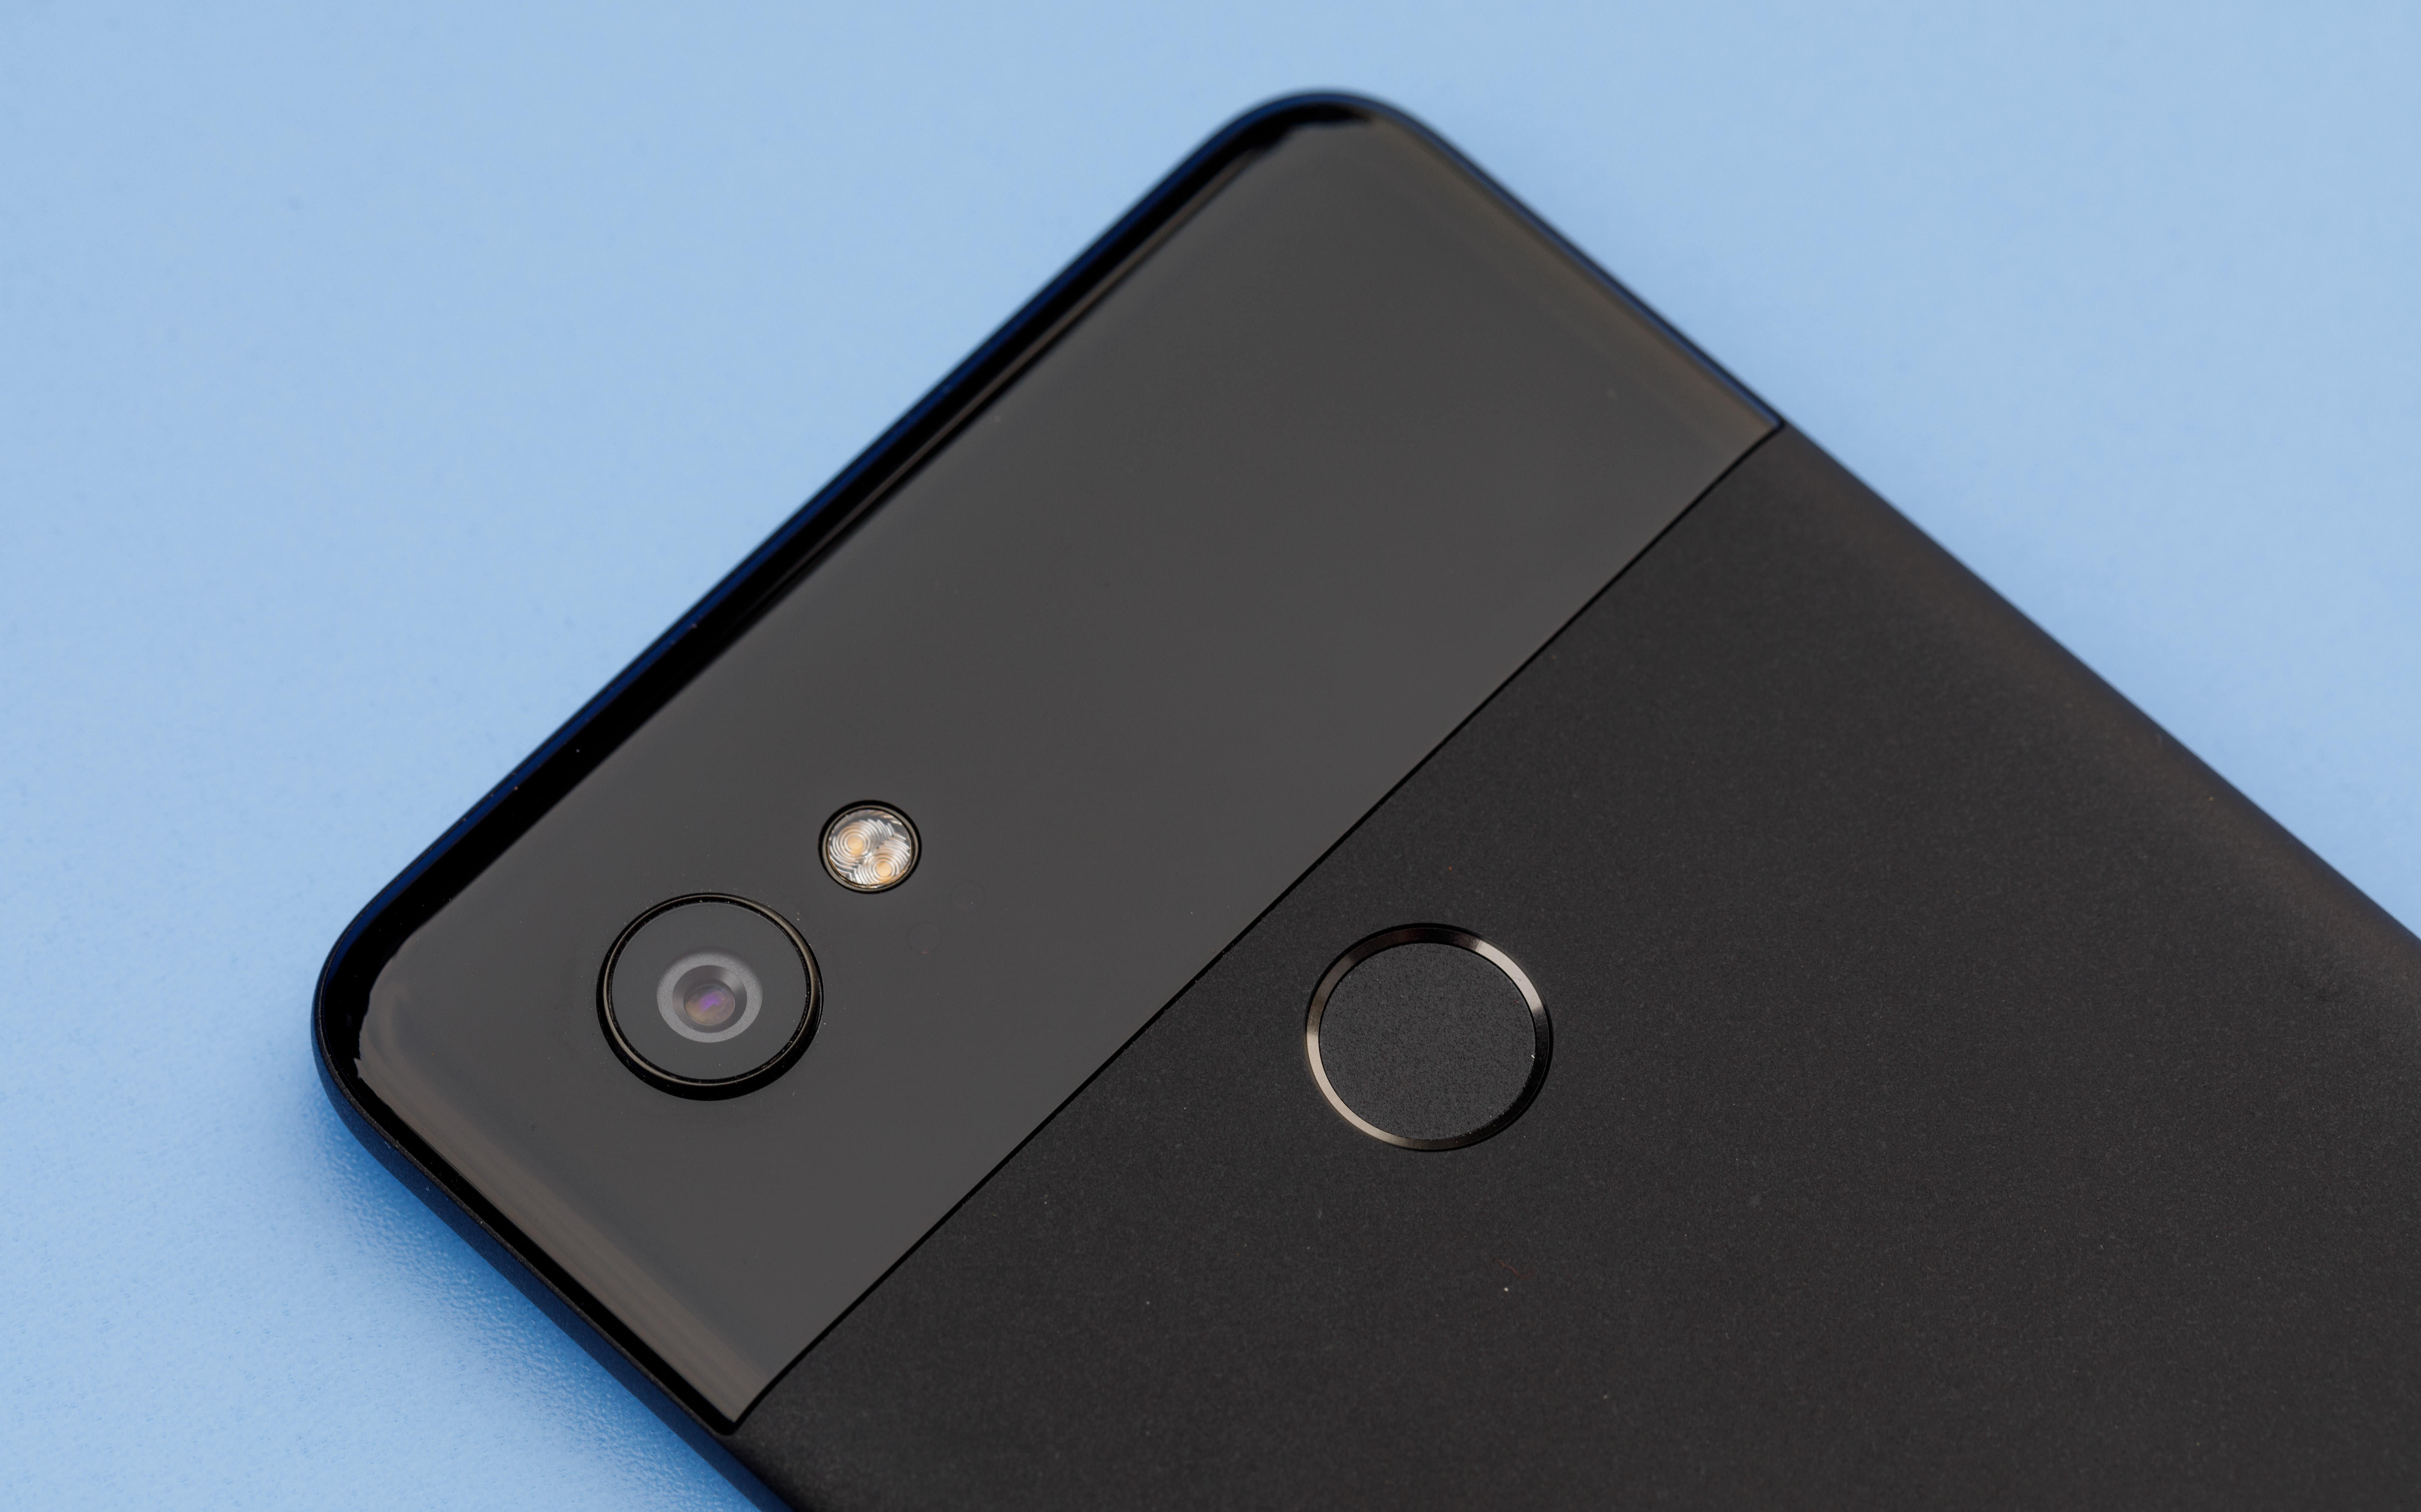 Google's Pixel 2 XL has a single camera, unlike rival flagship phones from Apple and Samsung. The second circle is a fingerprint reader.